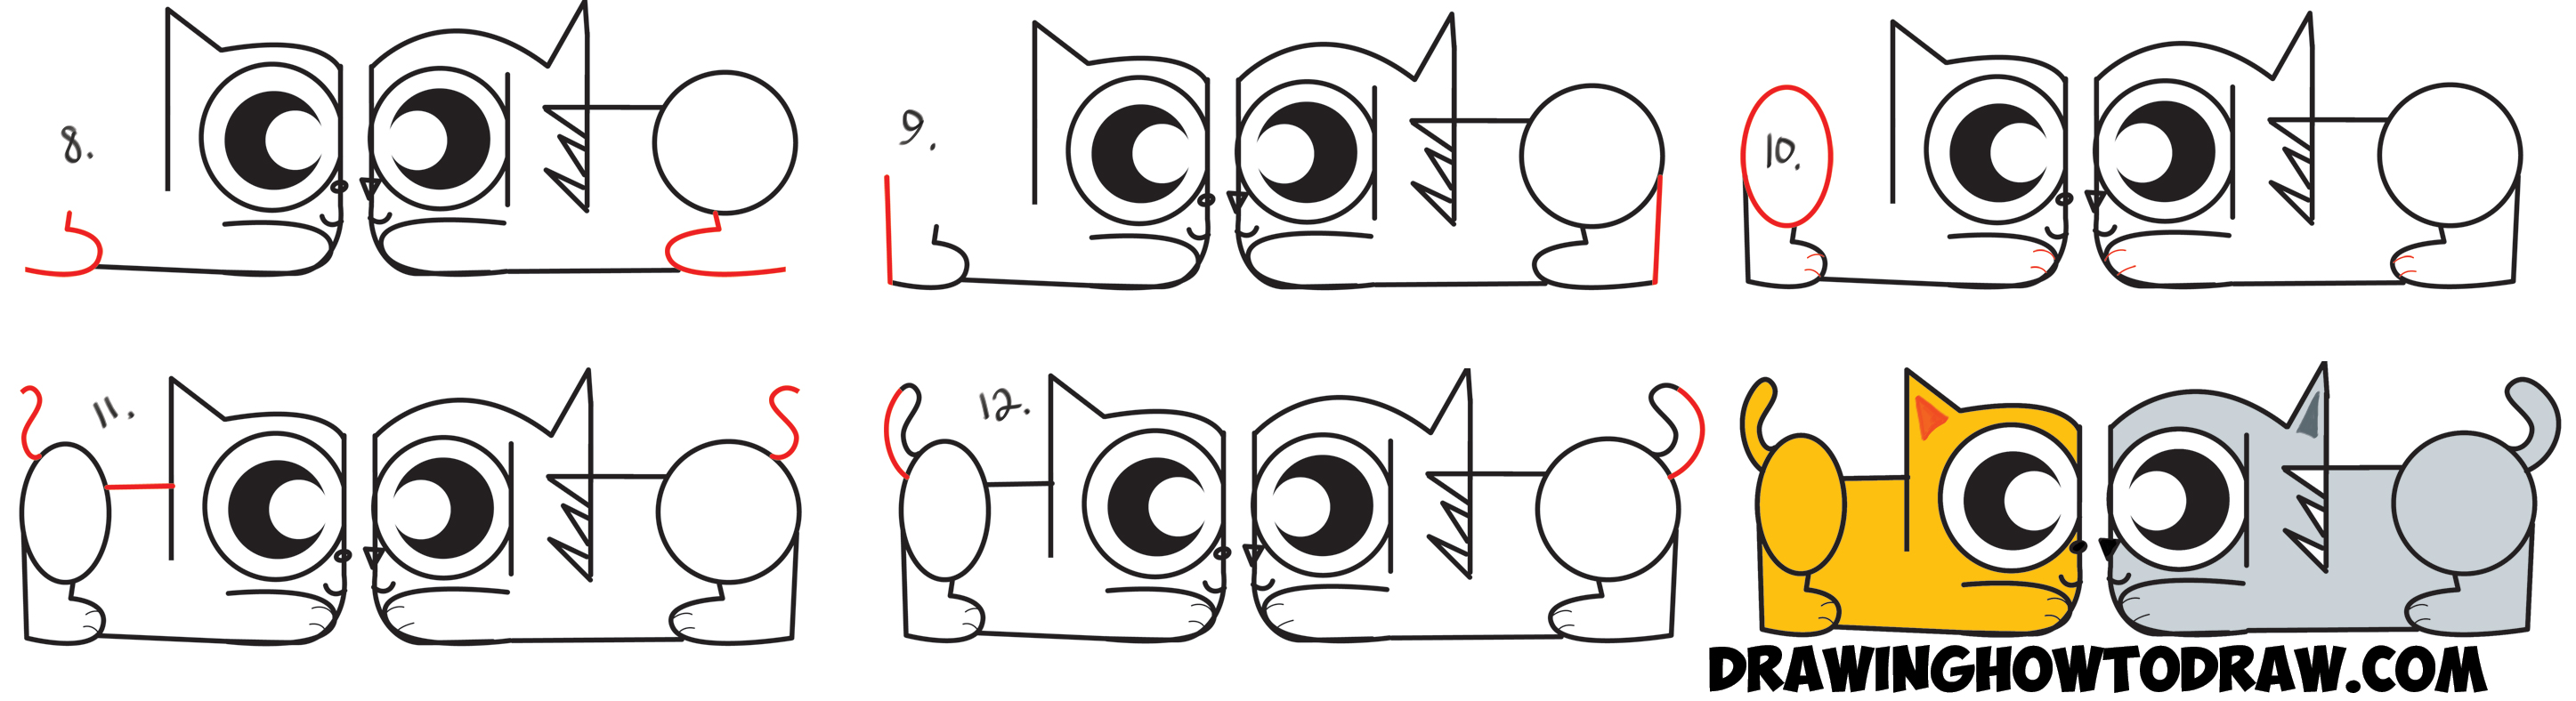 Learn How to Draw Cartoon Cats from the Spanish Word Gato - Simple Steps Drawing Lesson for Kids